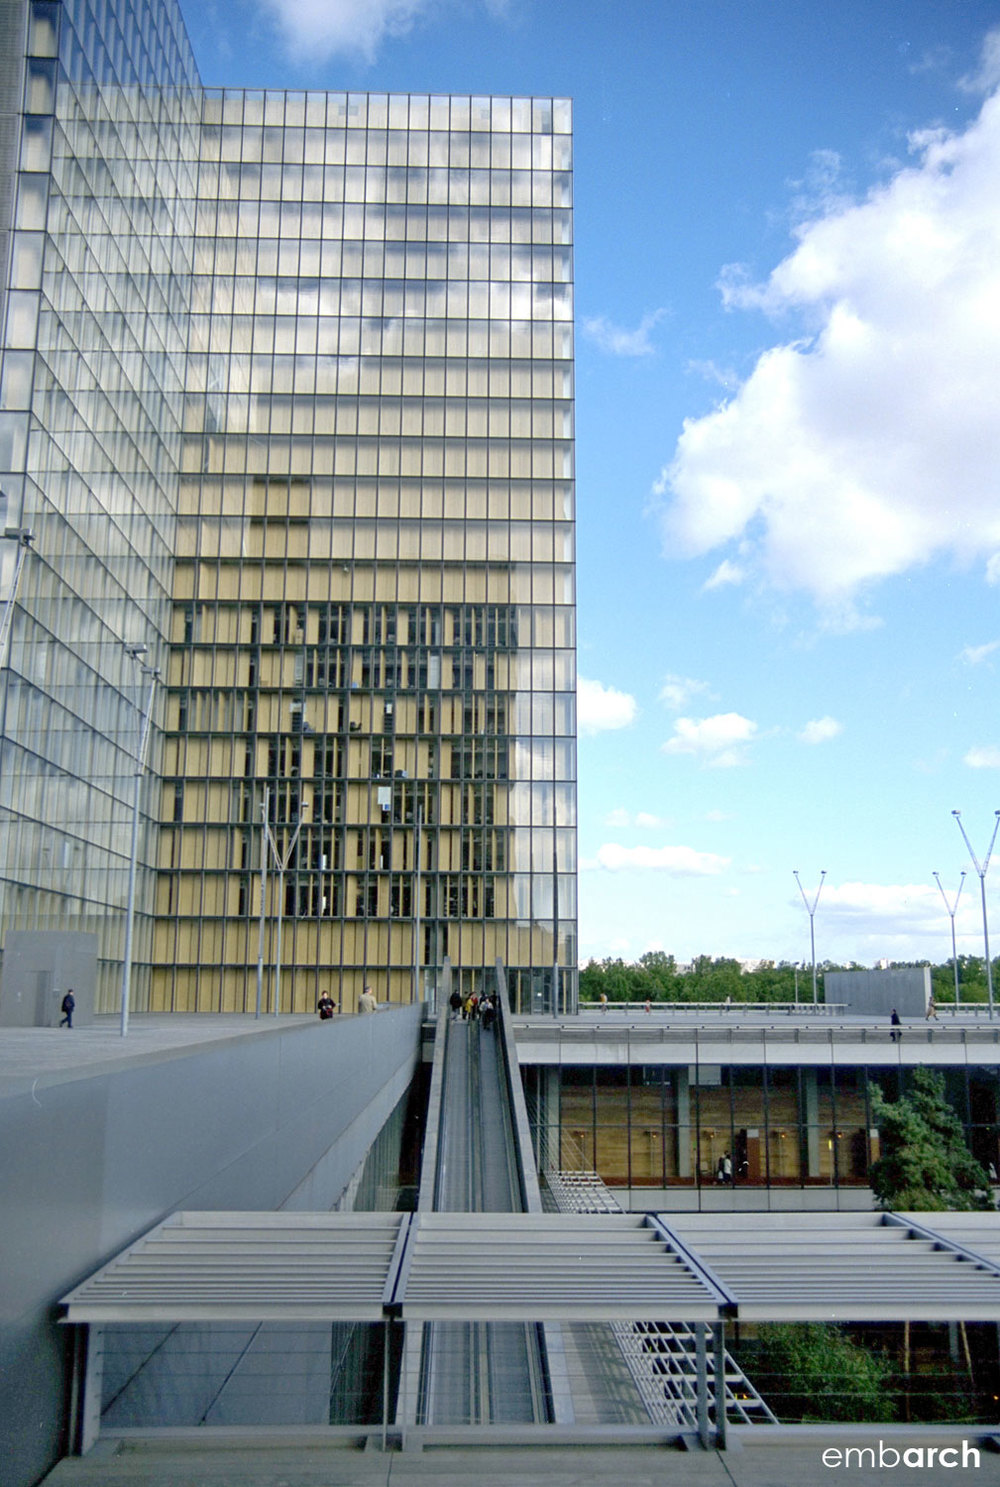 Bibliotheque Nationale - exterior tower and plaza